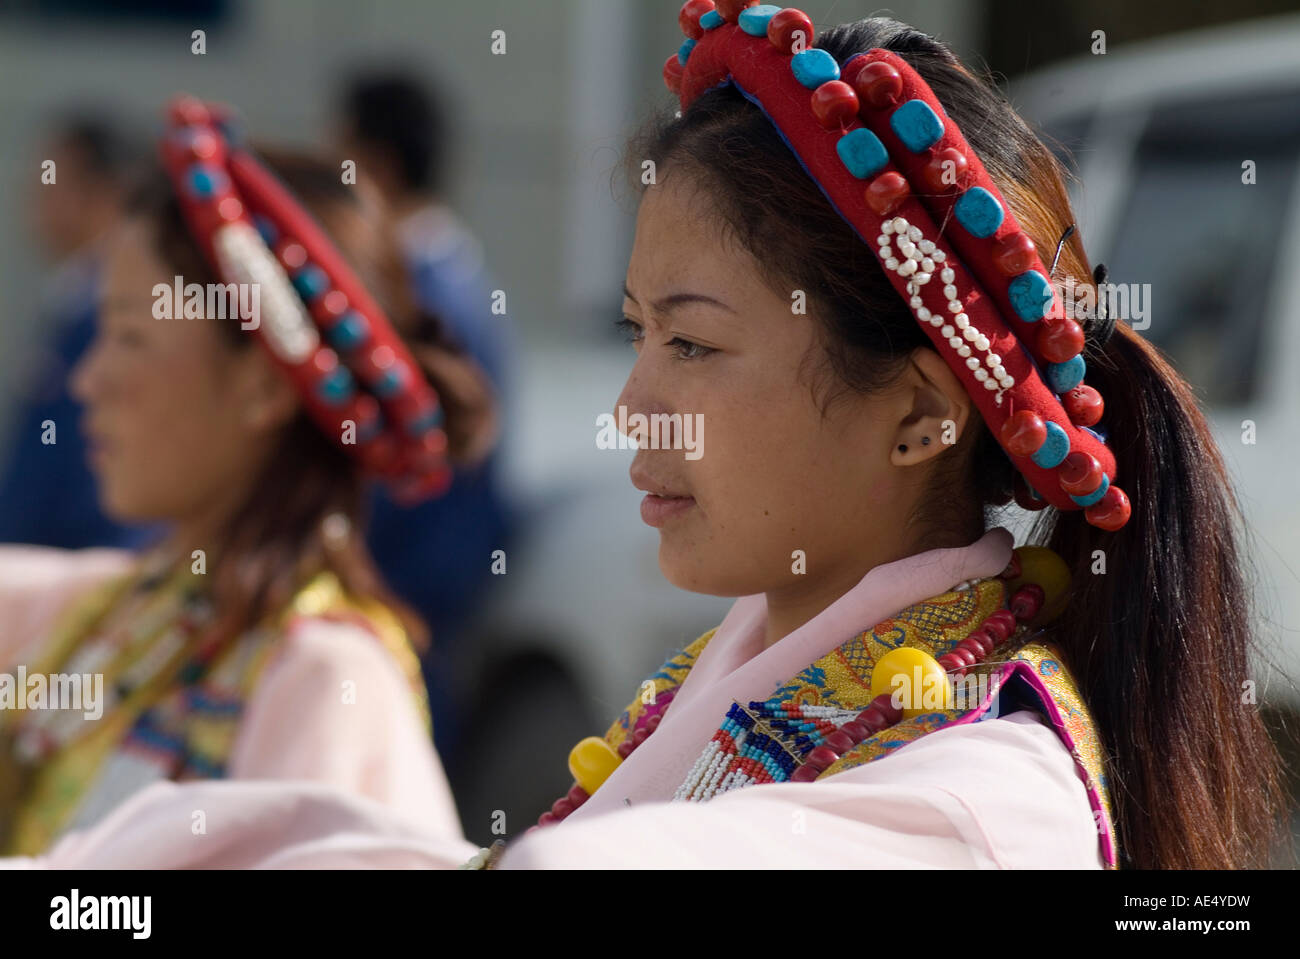 Dancer in traditional dress, Gyantse, Tibet, China, Asia - Stock Image